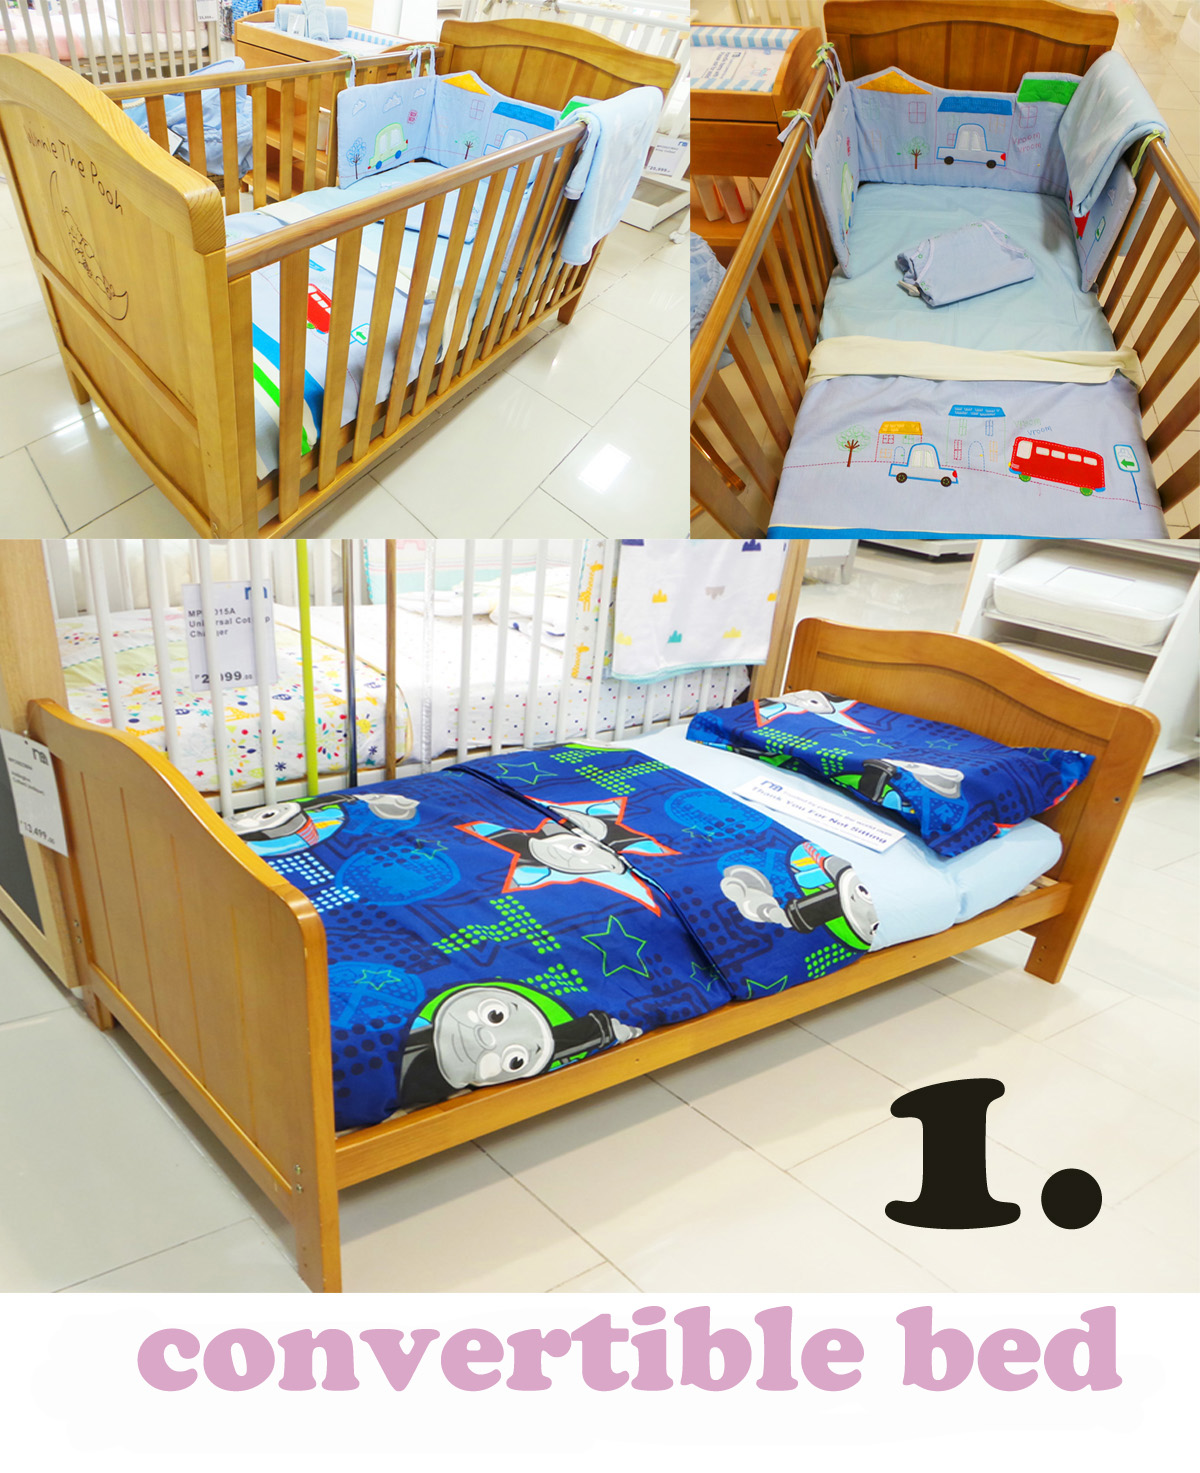 Crib for sale in davao city - What A Smart Way To Design A Crib You Can Actually Transform It Into A Bed So Your Little One Can Use It From